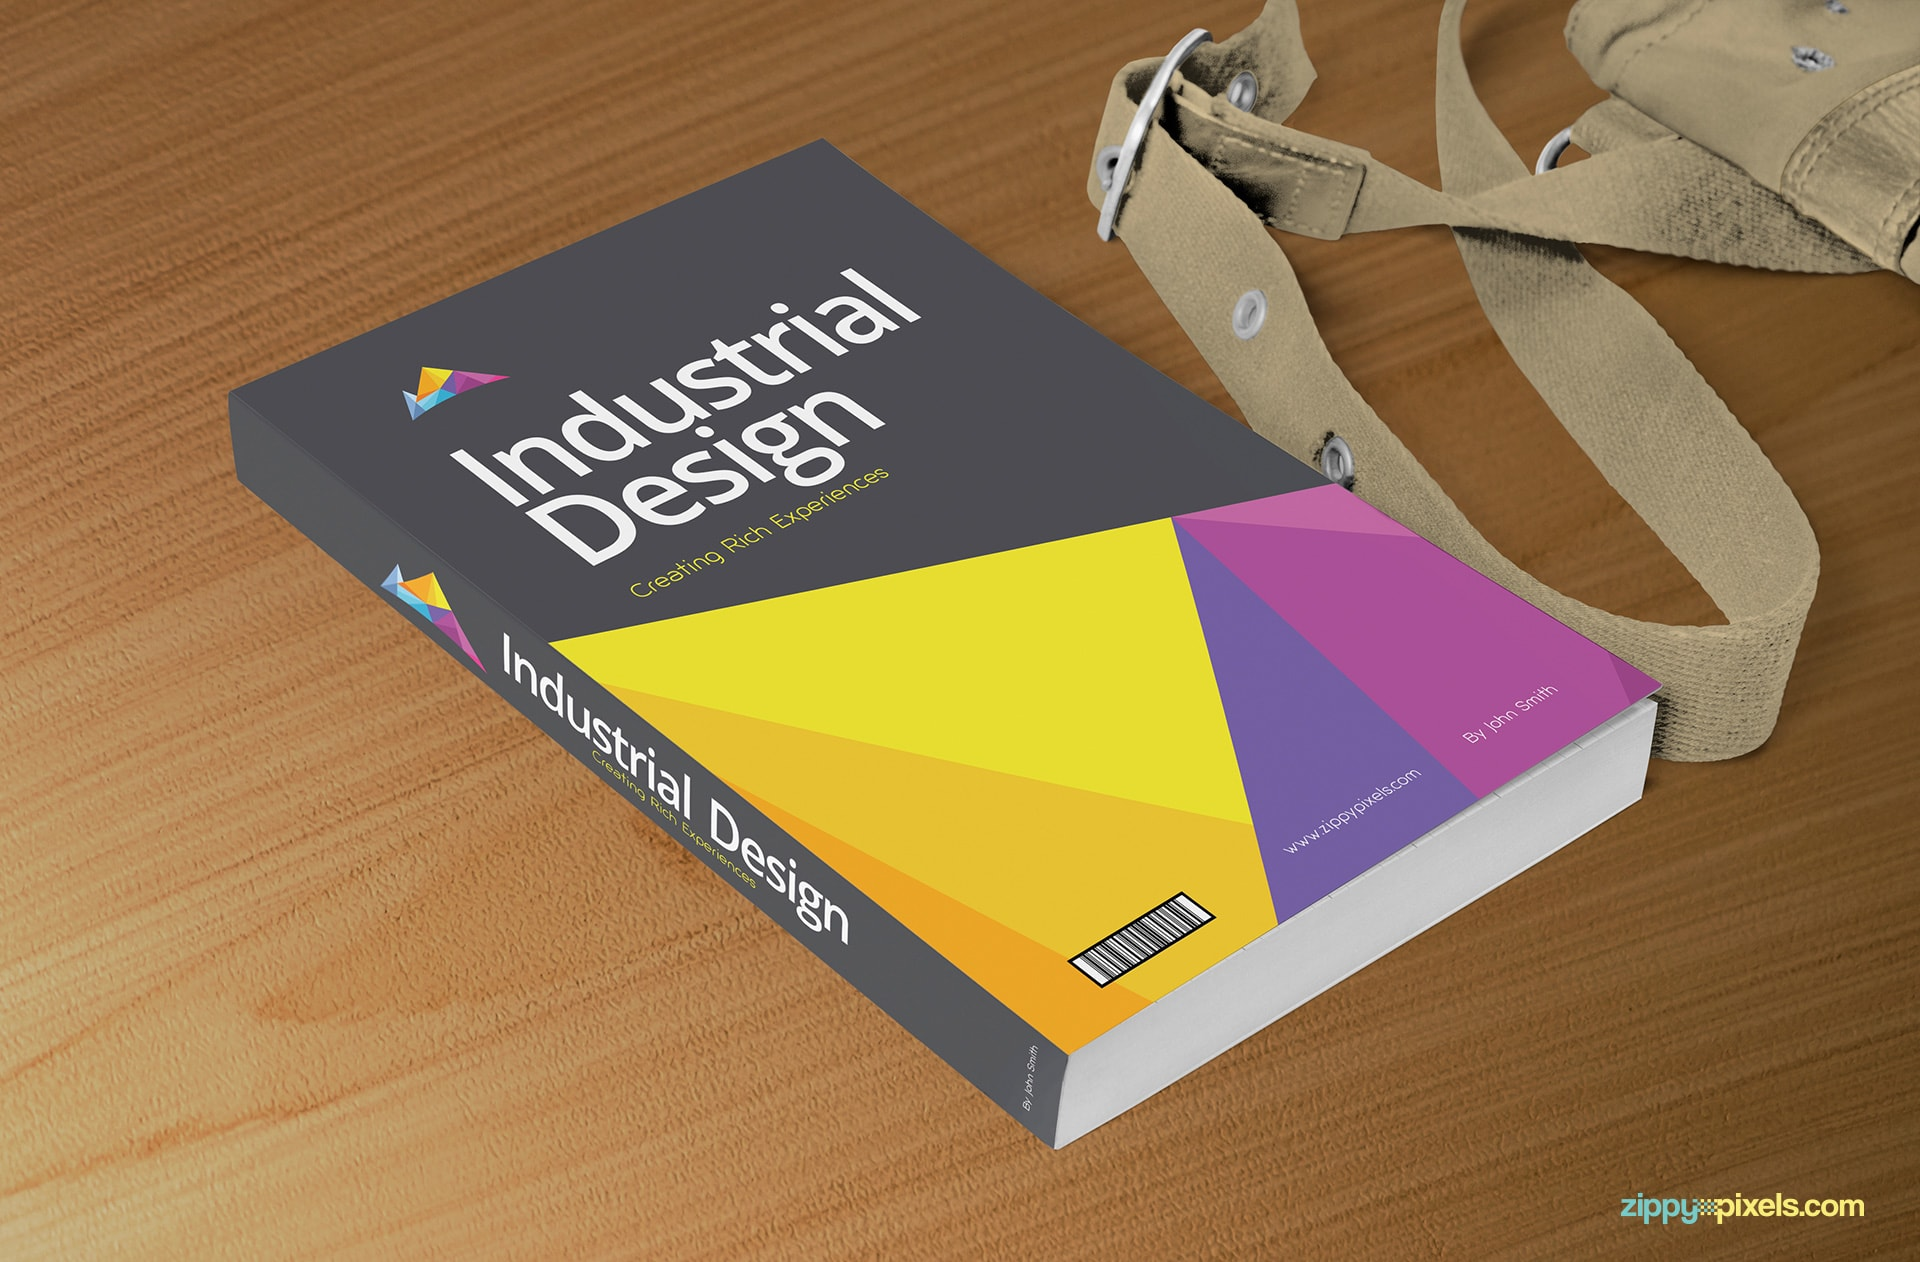 soft-cover-book-mockup-placed-on-wooden-surface-with-bag